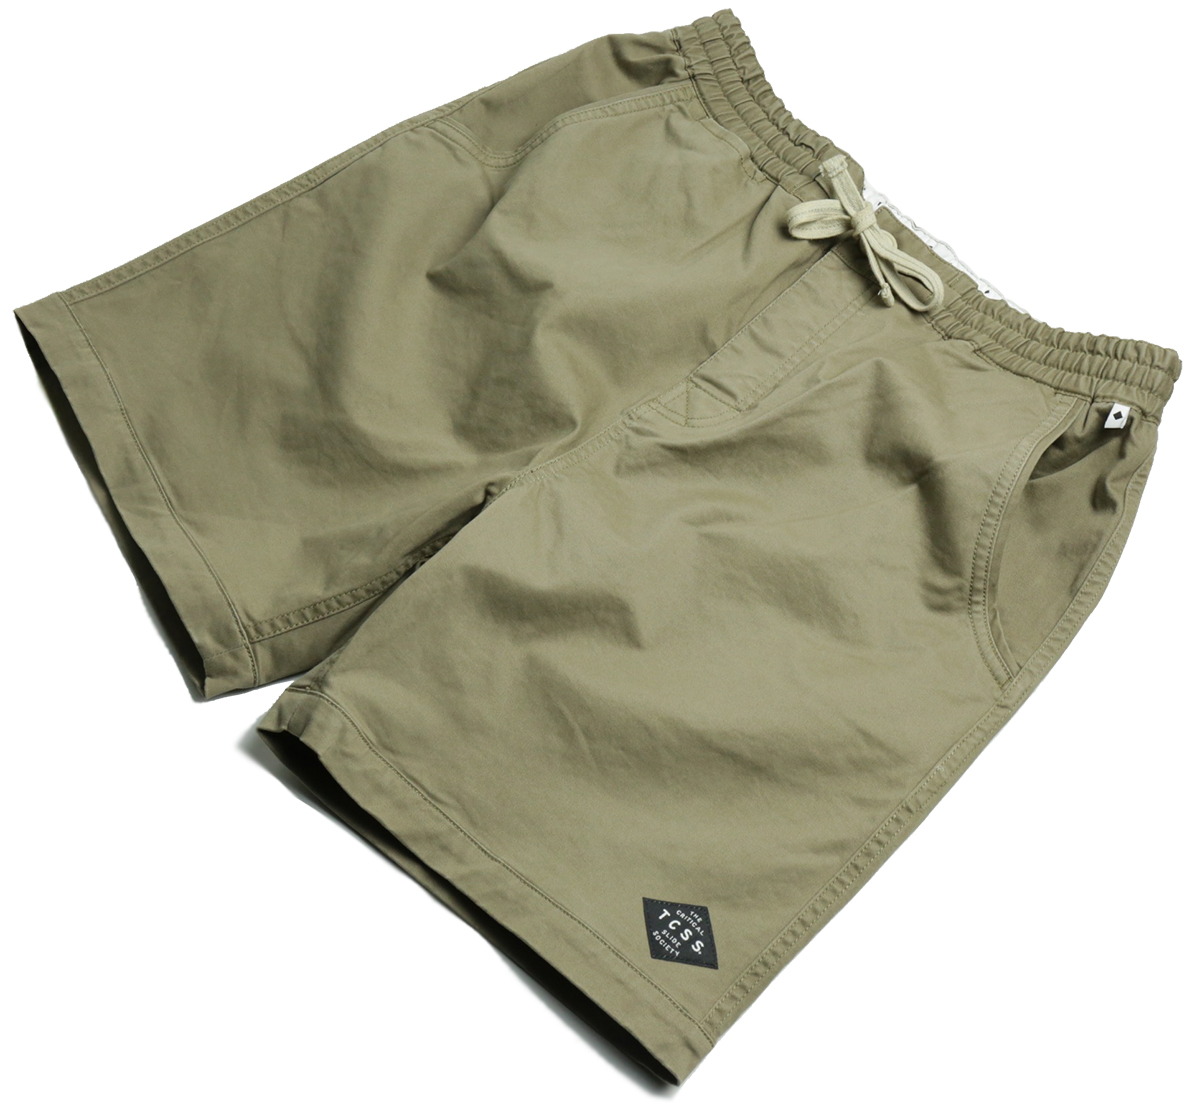 TCSS / MR COMFORT WALKSHORT - Brindle(Beige)